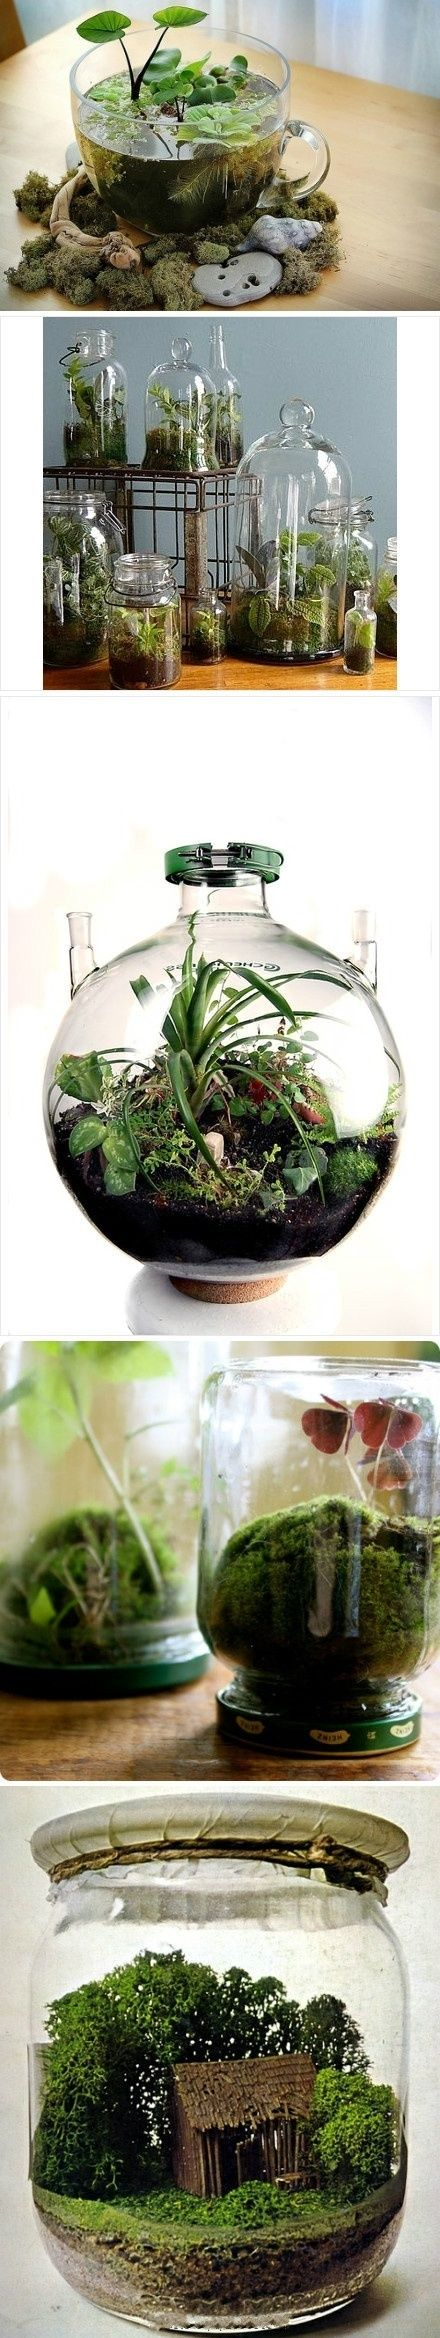 mini jardim aquatico:Bottle Terrarium Ideas